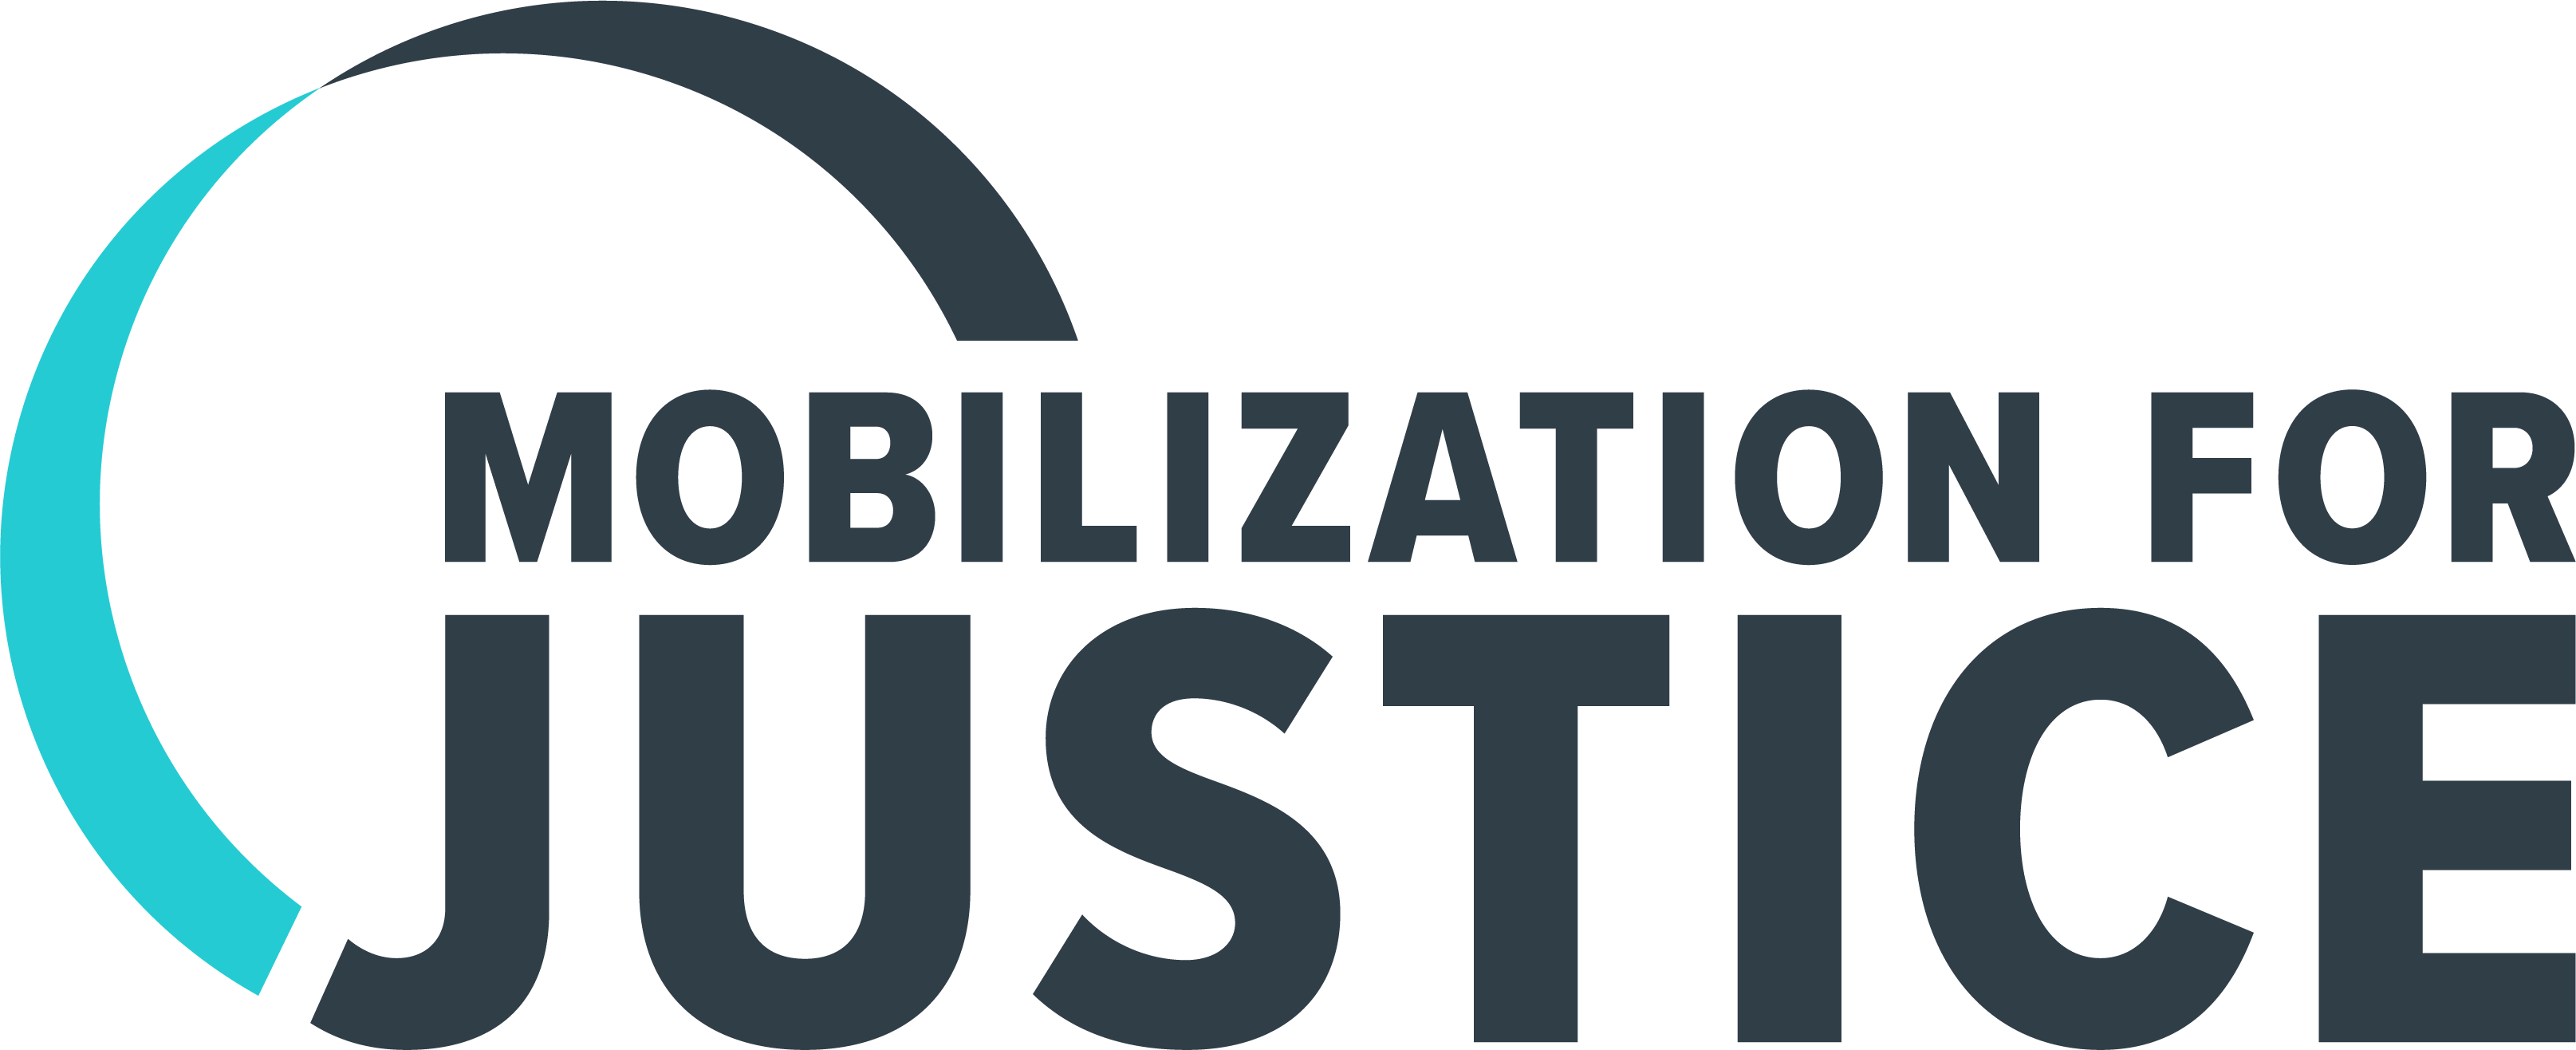 Mobilization for Justice, Inc.